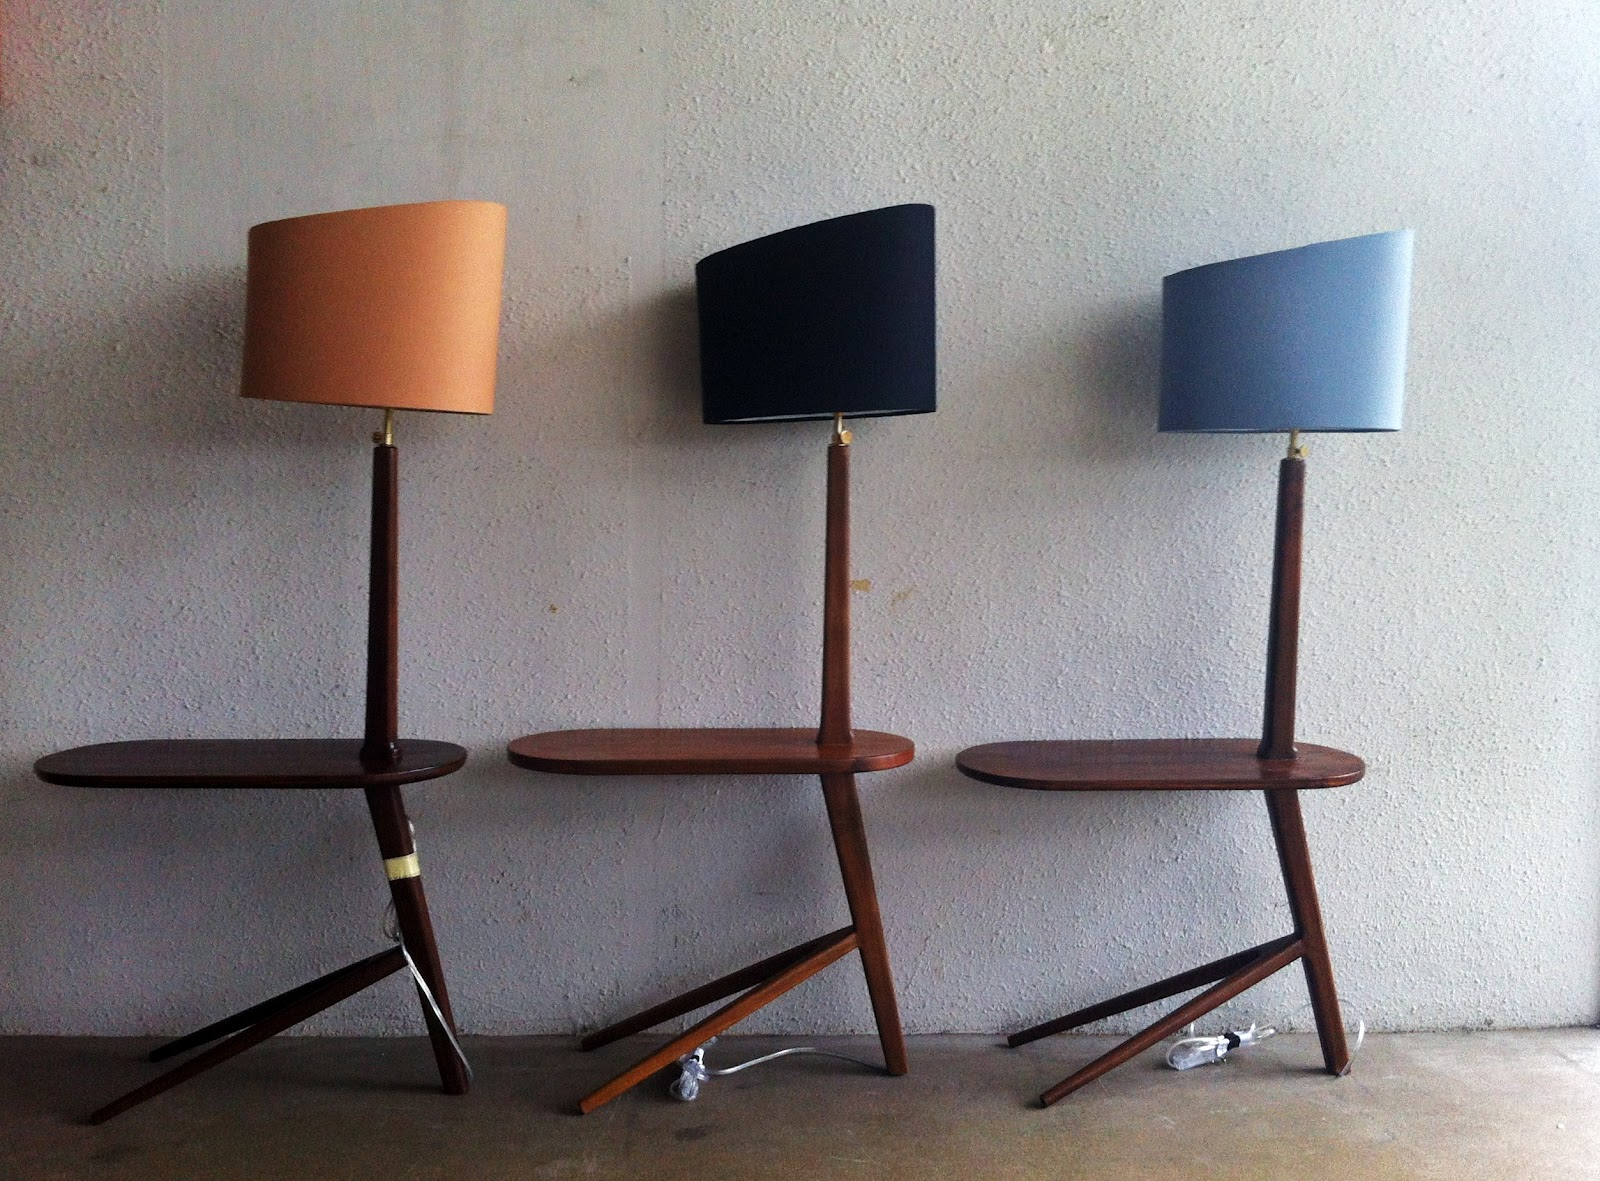 Second charm collections scandinavian inspired lamps ashley the smaller lamp shades are handcrafted too and they come in three shades of black cuppuccino brown and bluish grey we hope to add more designs of aloadofball Image collections